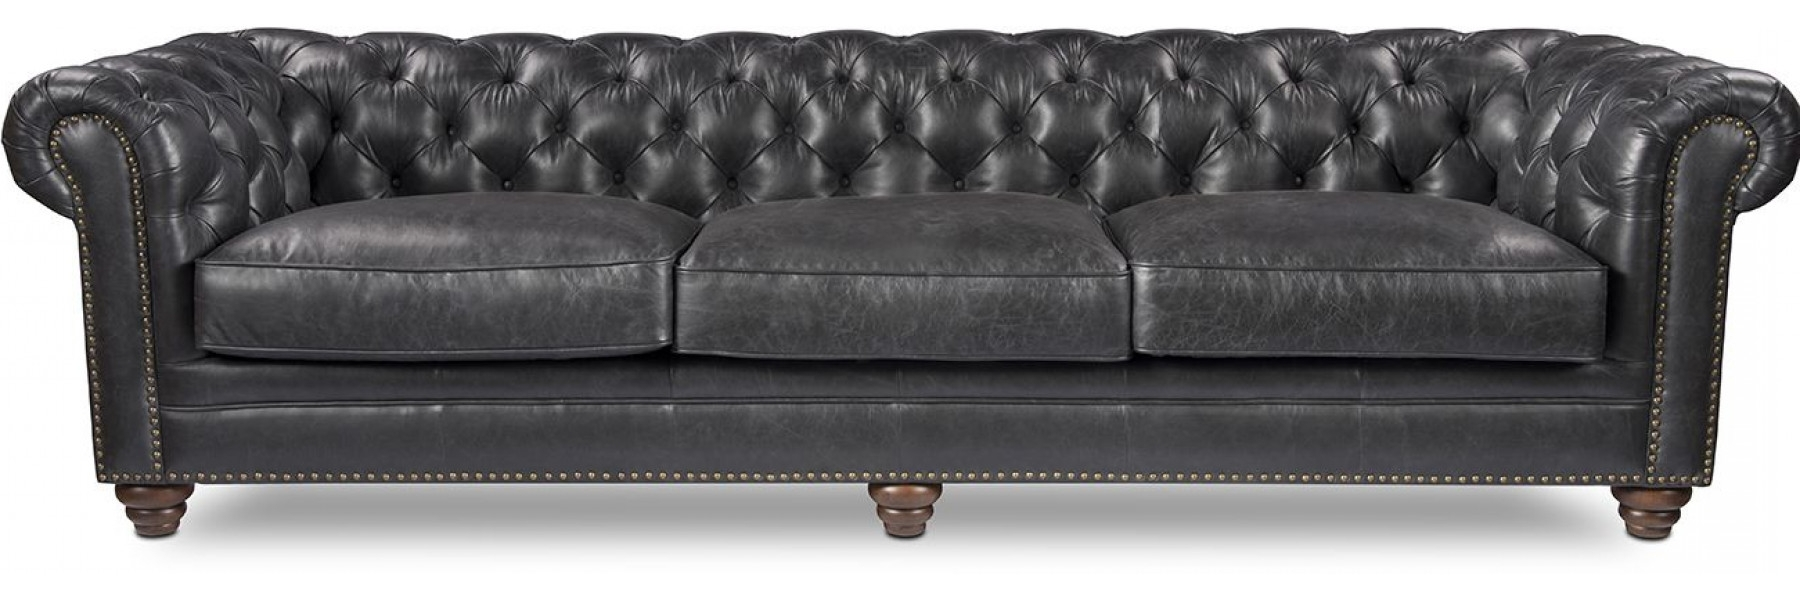 Well Known Sofa Oxford Black In Oxford Sofas (View 10 of 15)